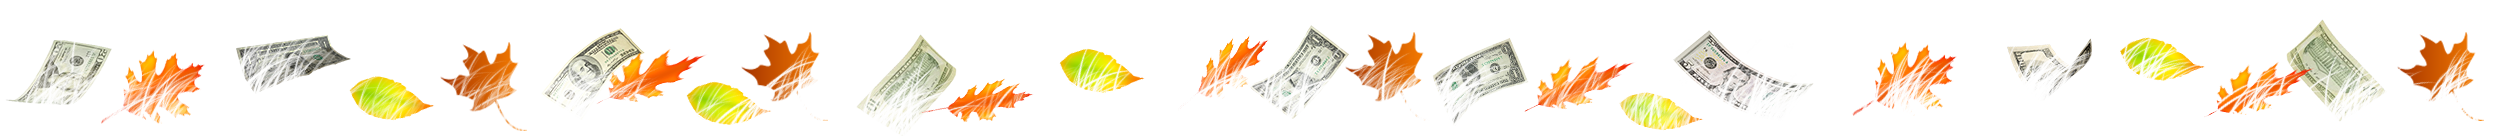 Leaves-and-Dollars-in-Grass-RESIZED.png